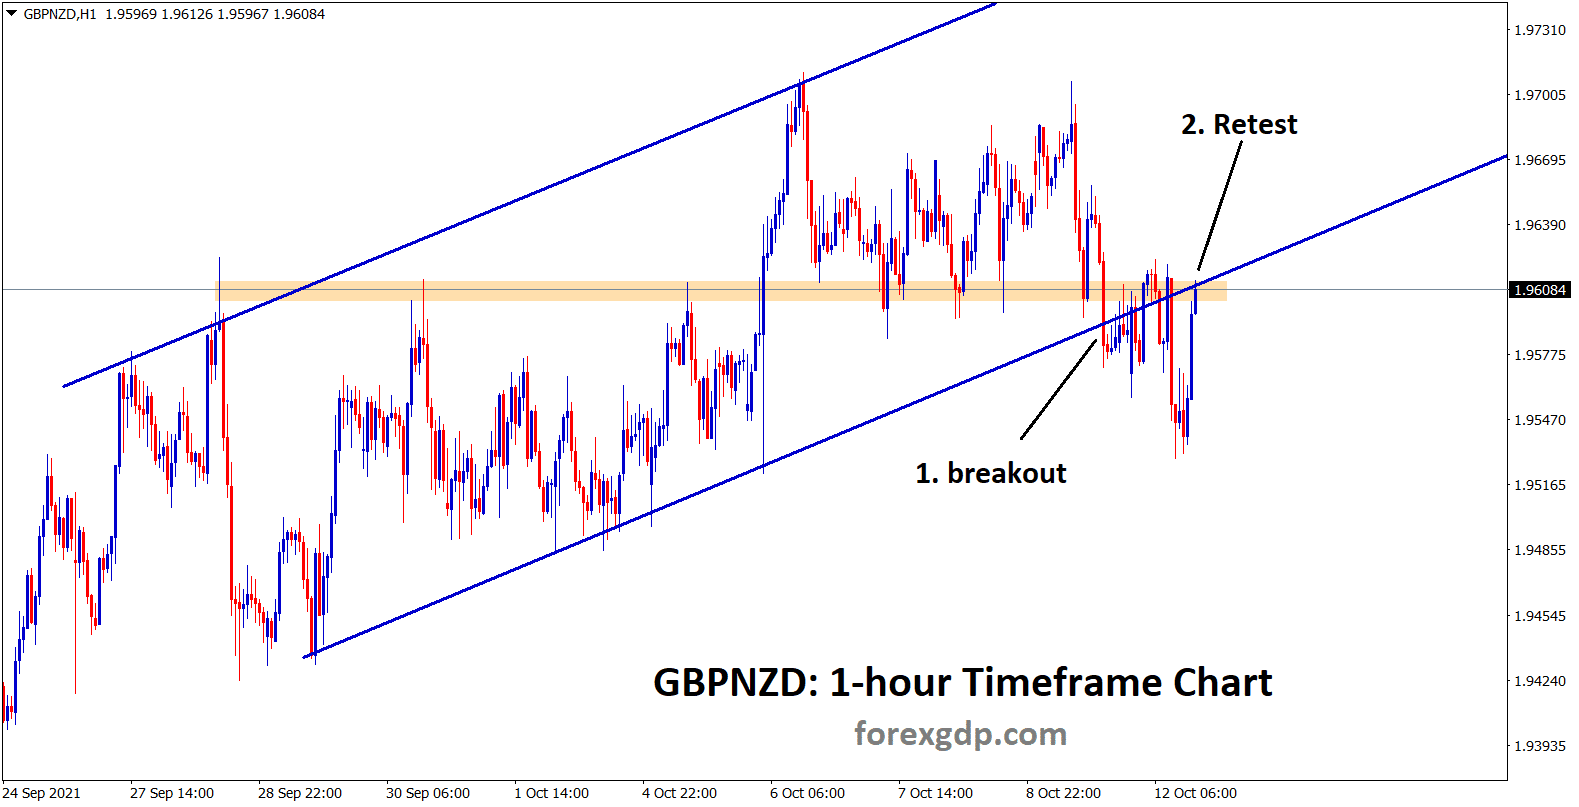 GBPNZD has broken the higher low of ascending channel and retesting now